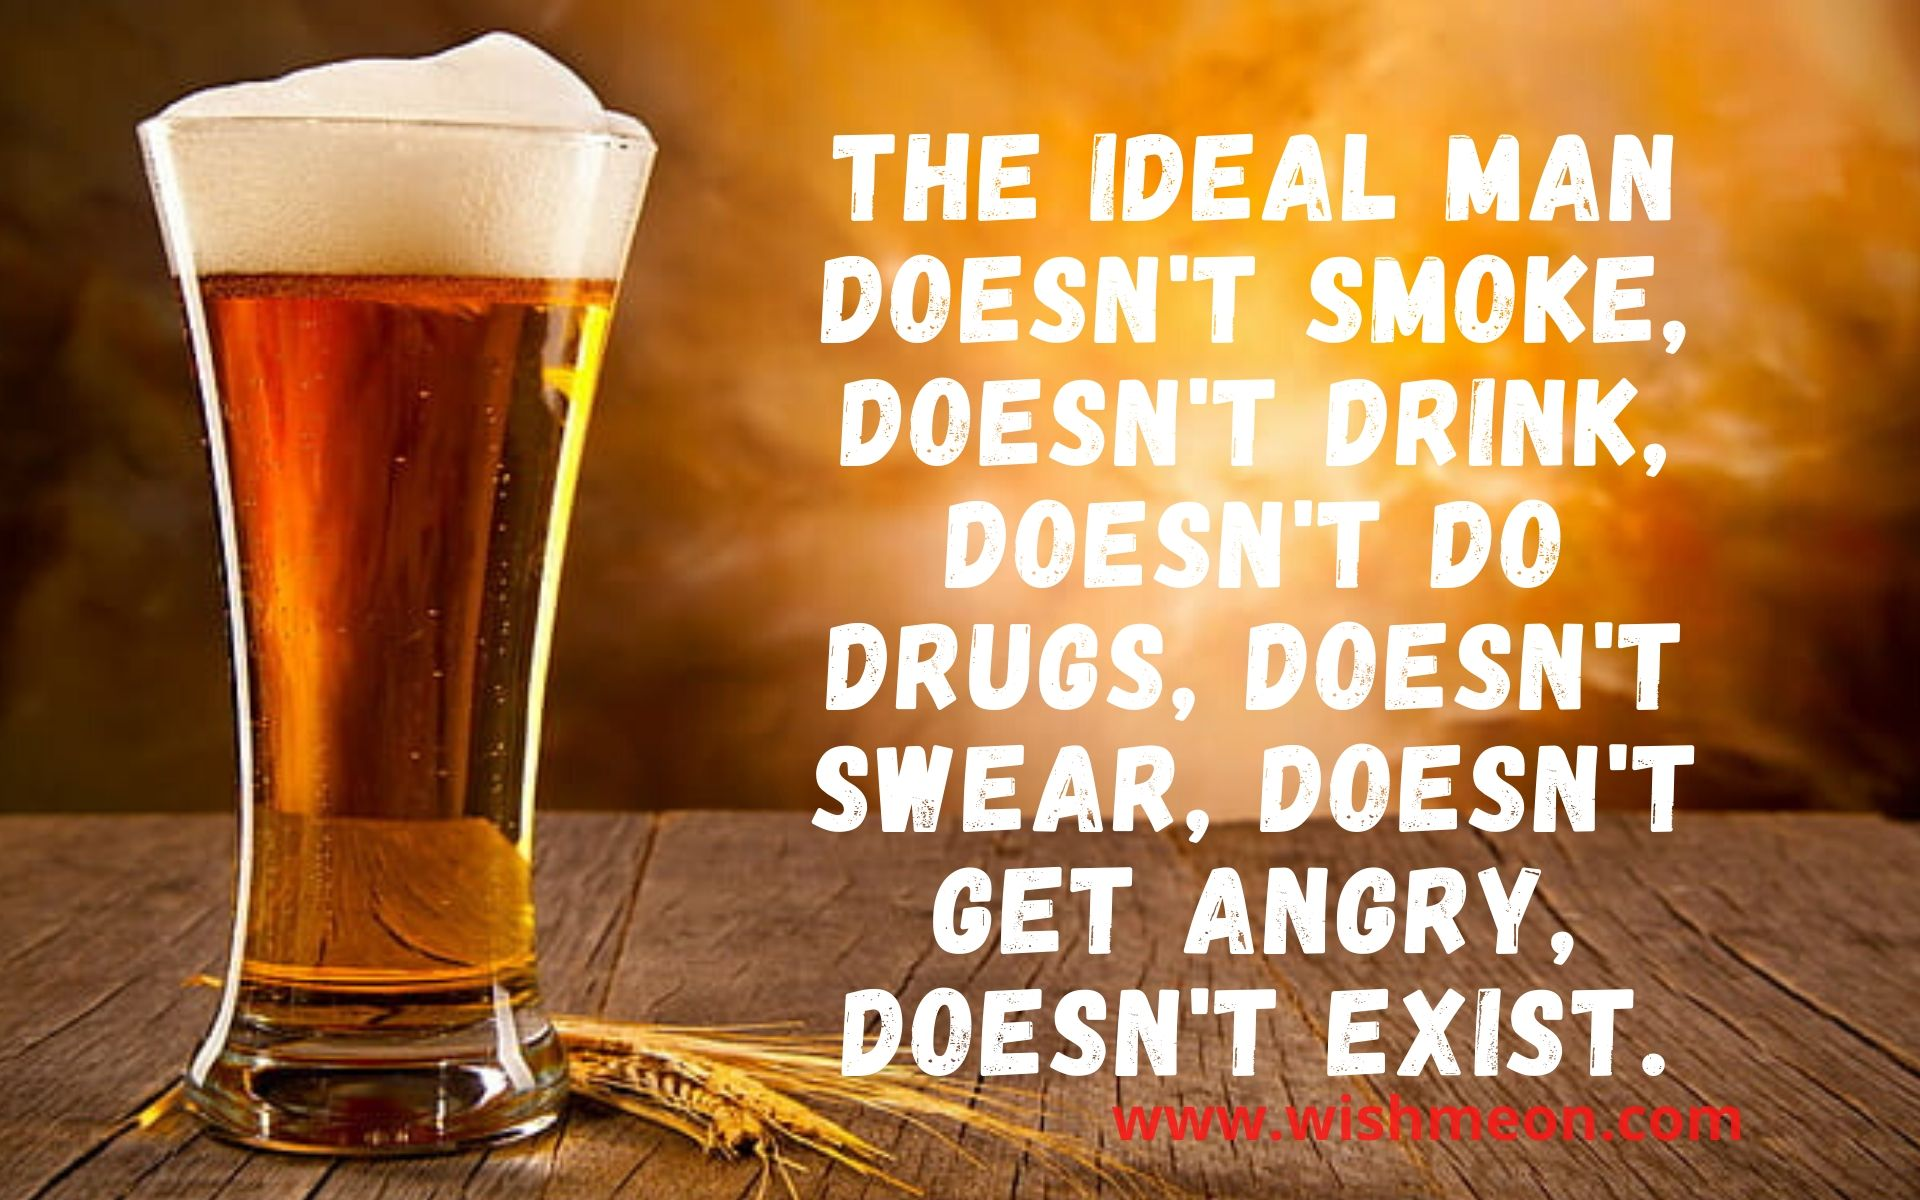 The Ideal Man Doesnot Drink Doesnot Smoke